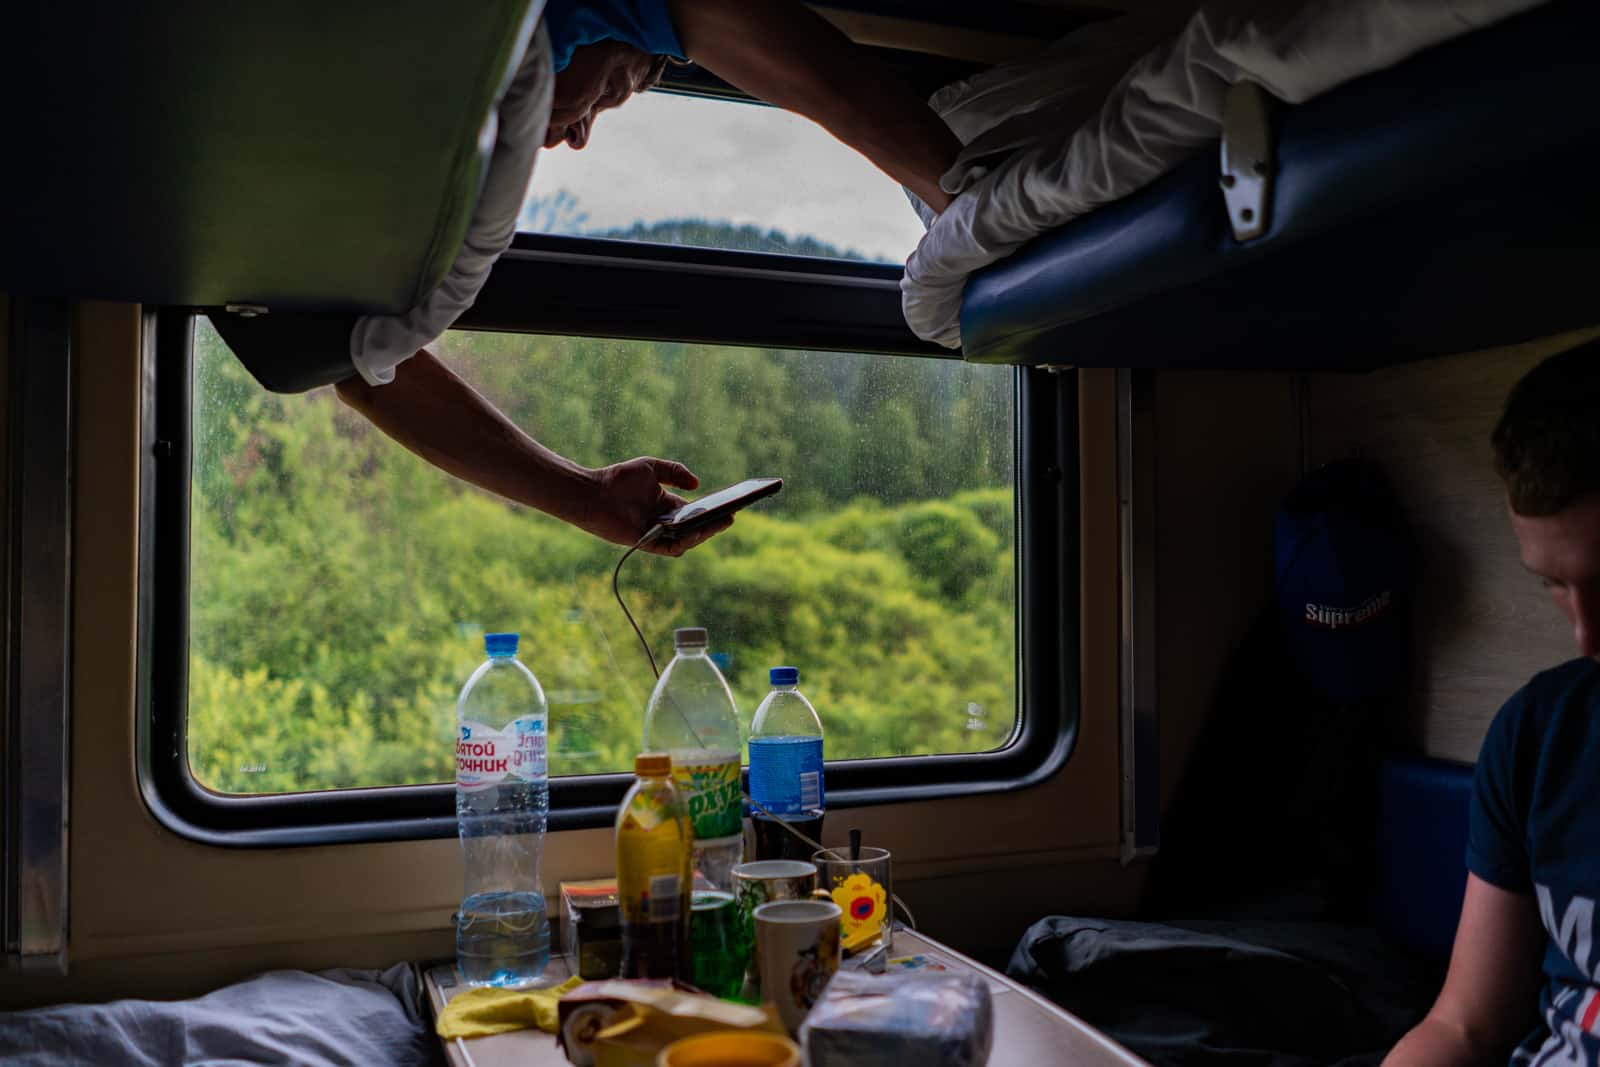 Man using mobile phone charger on Russian train